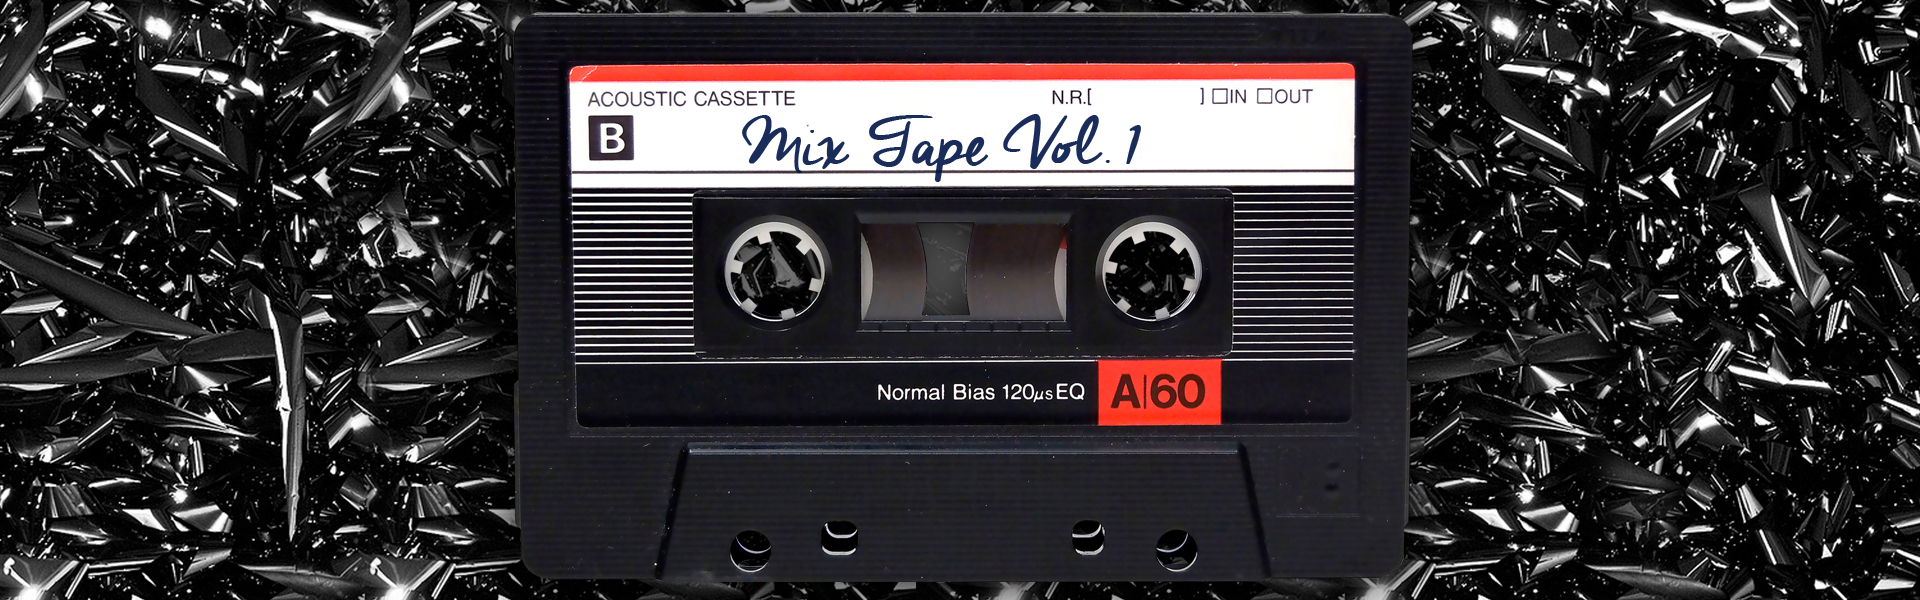 MPU_Ep17_Mix_Tape_Vol_1_1920x600